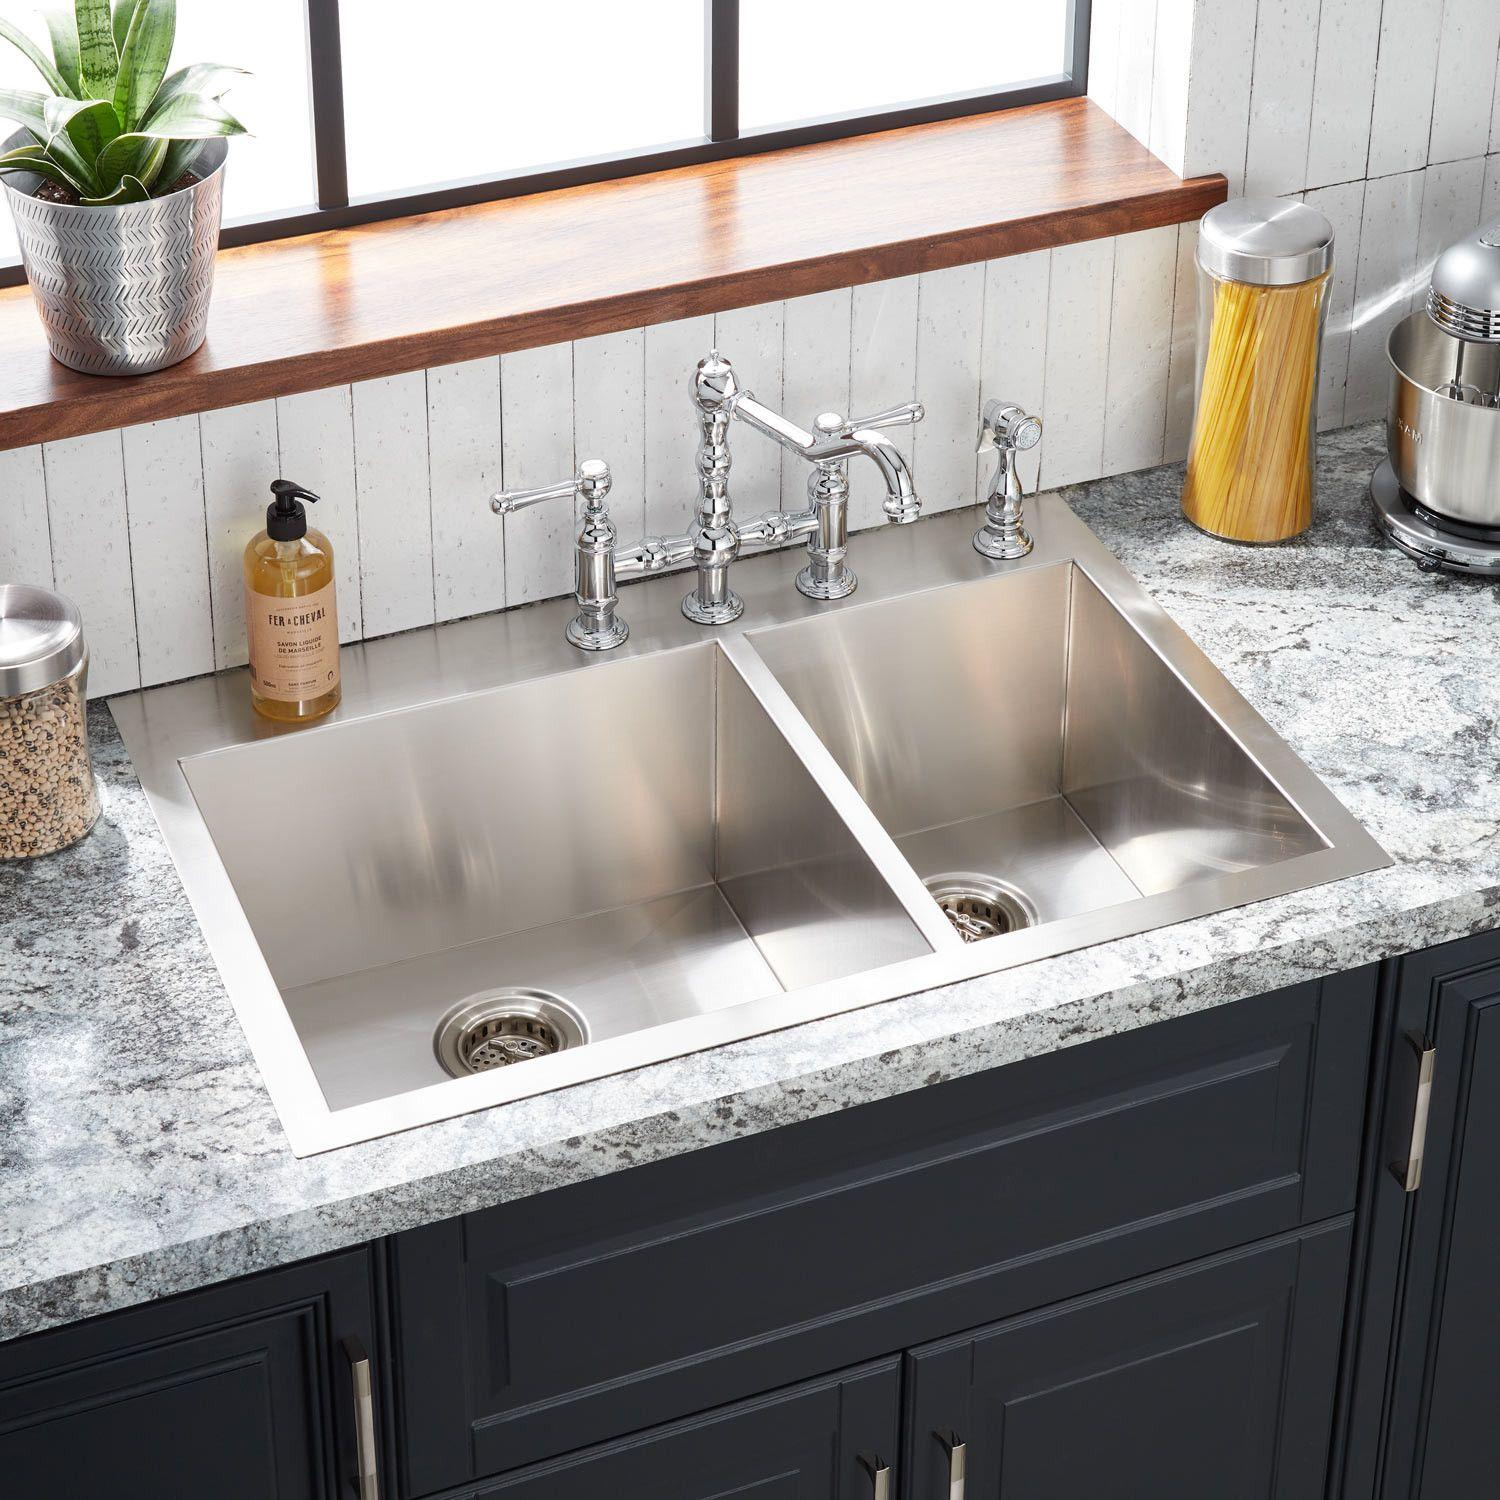 33 Sitka Offset Double Bowl Stainless Steel Drop In Sink 4 Hole Kitchen